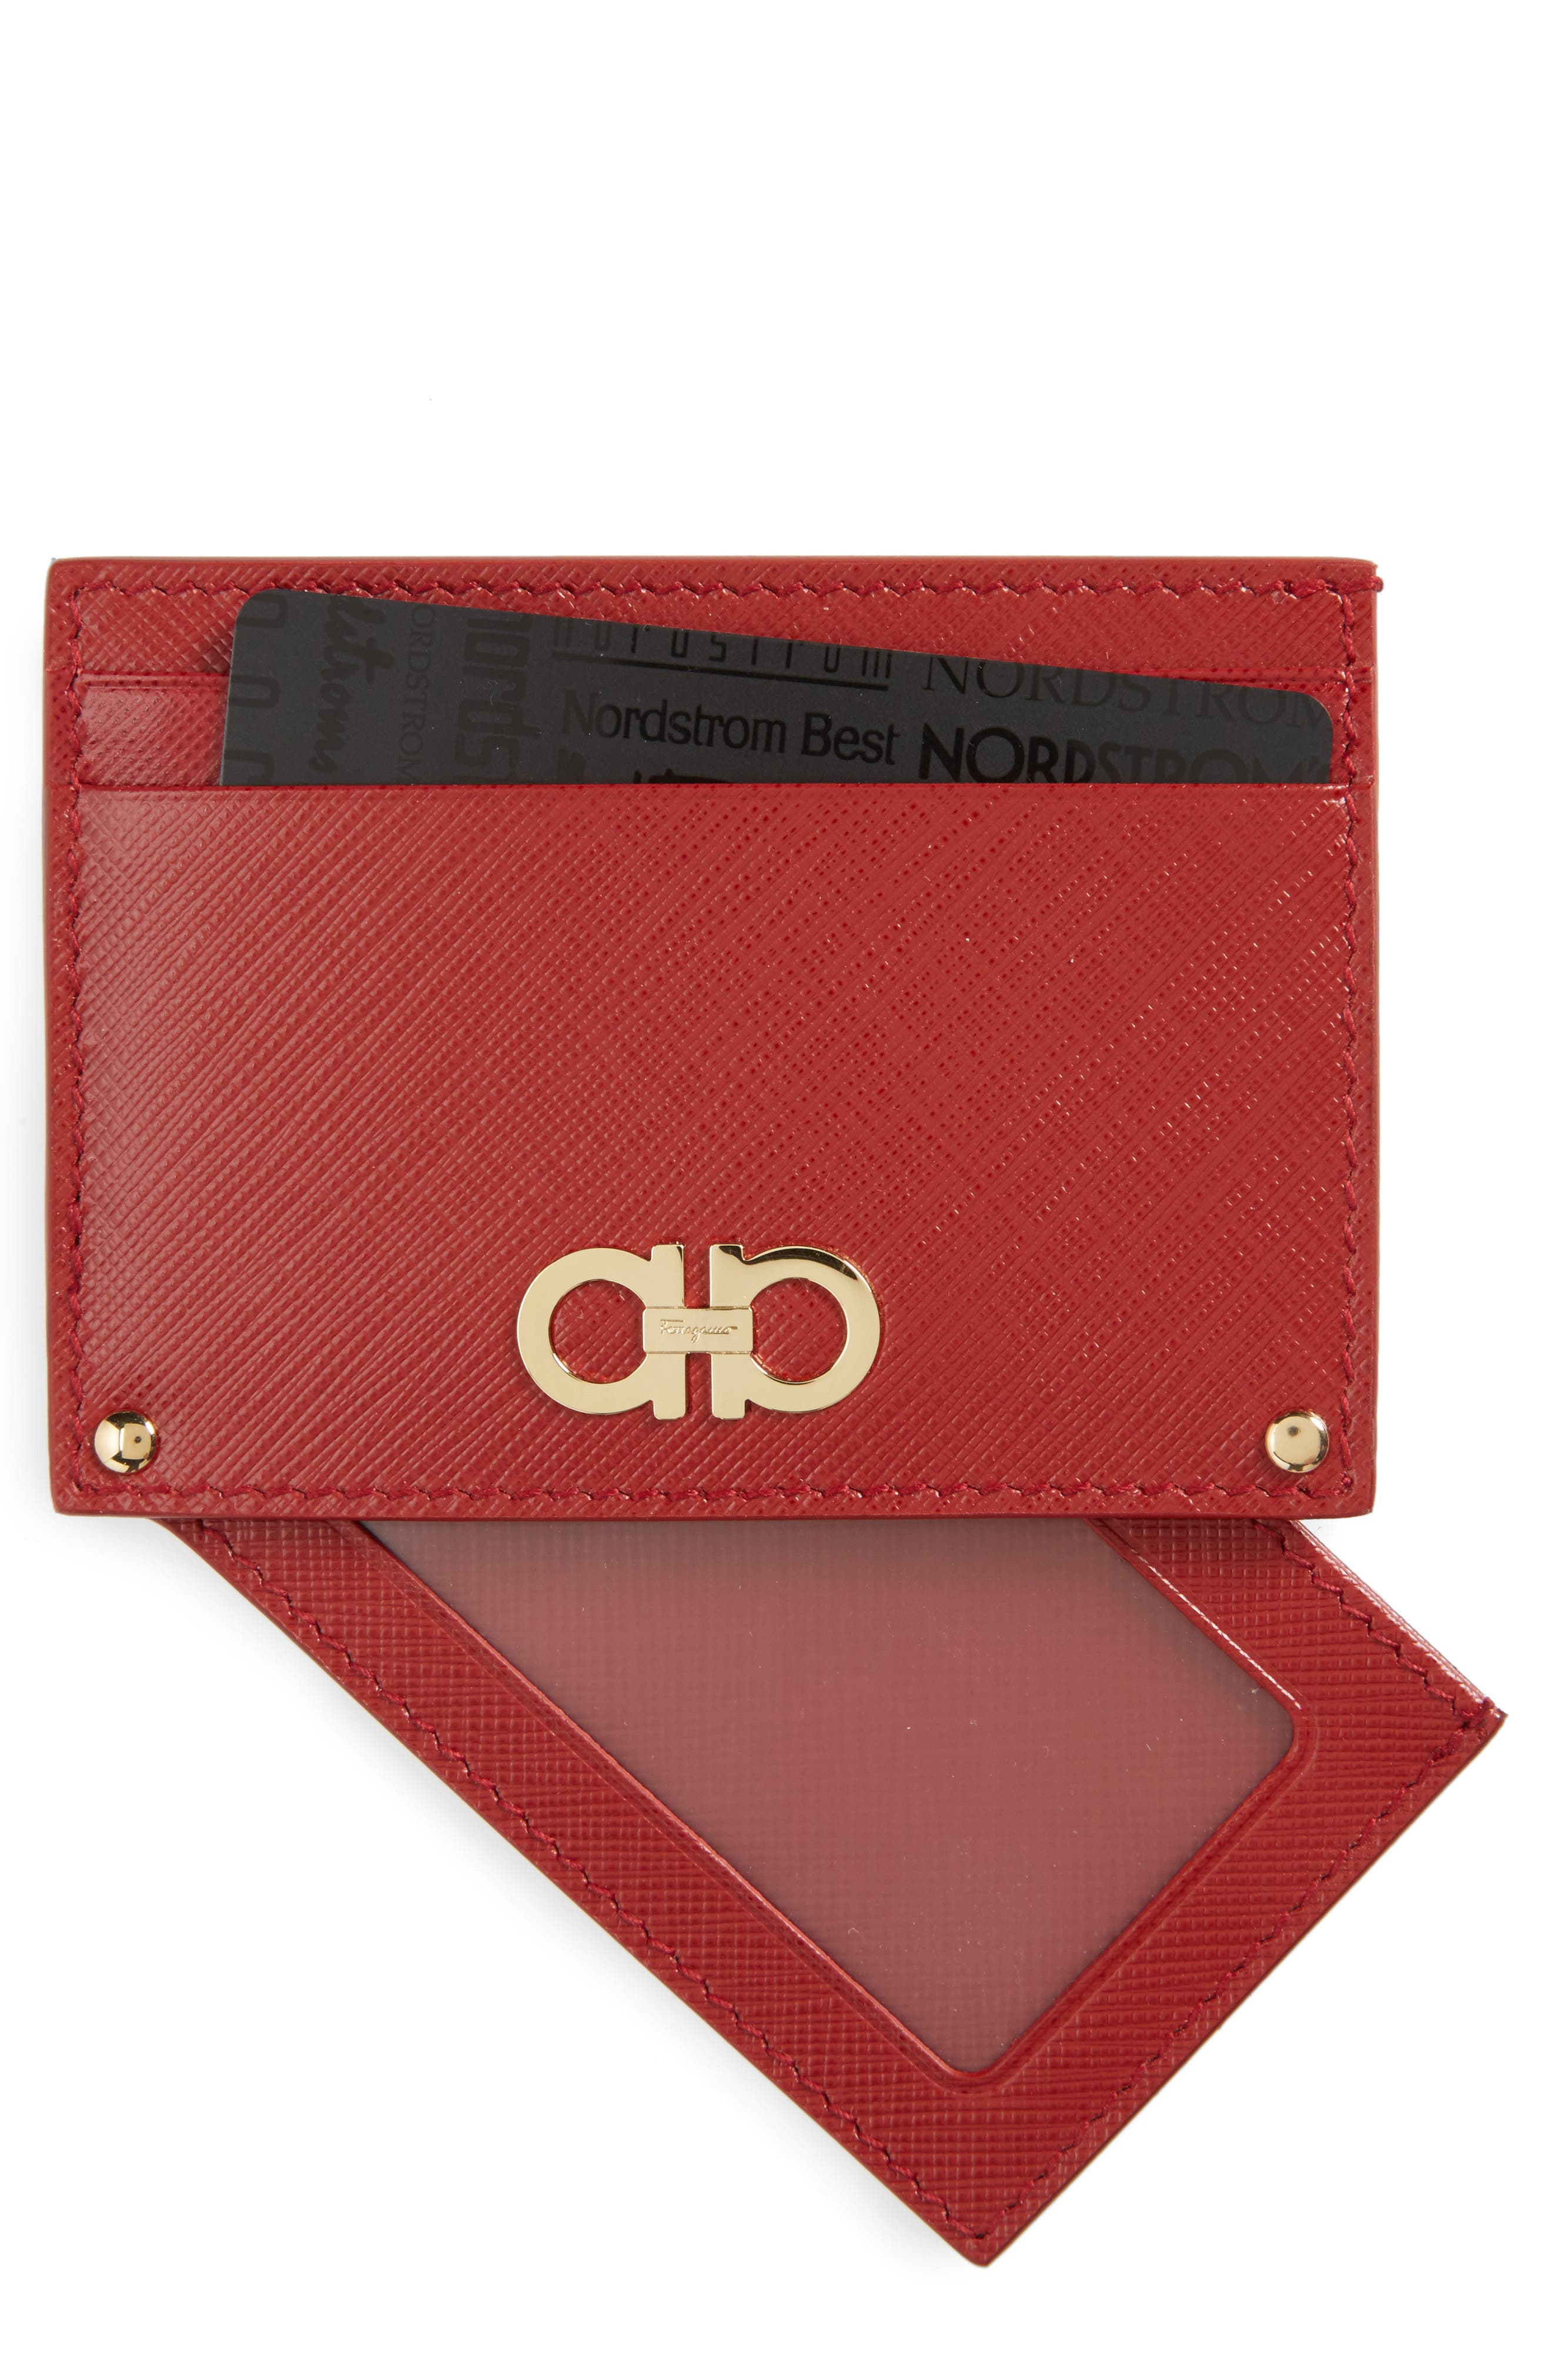 Alternate Image 1 Selected - Salvatore Ferragamo Saffiano Calfskin Card Case